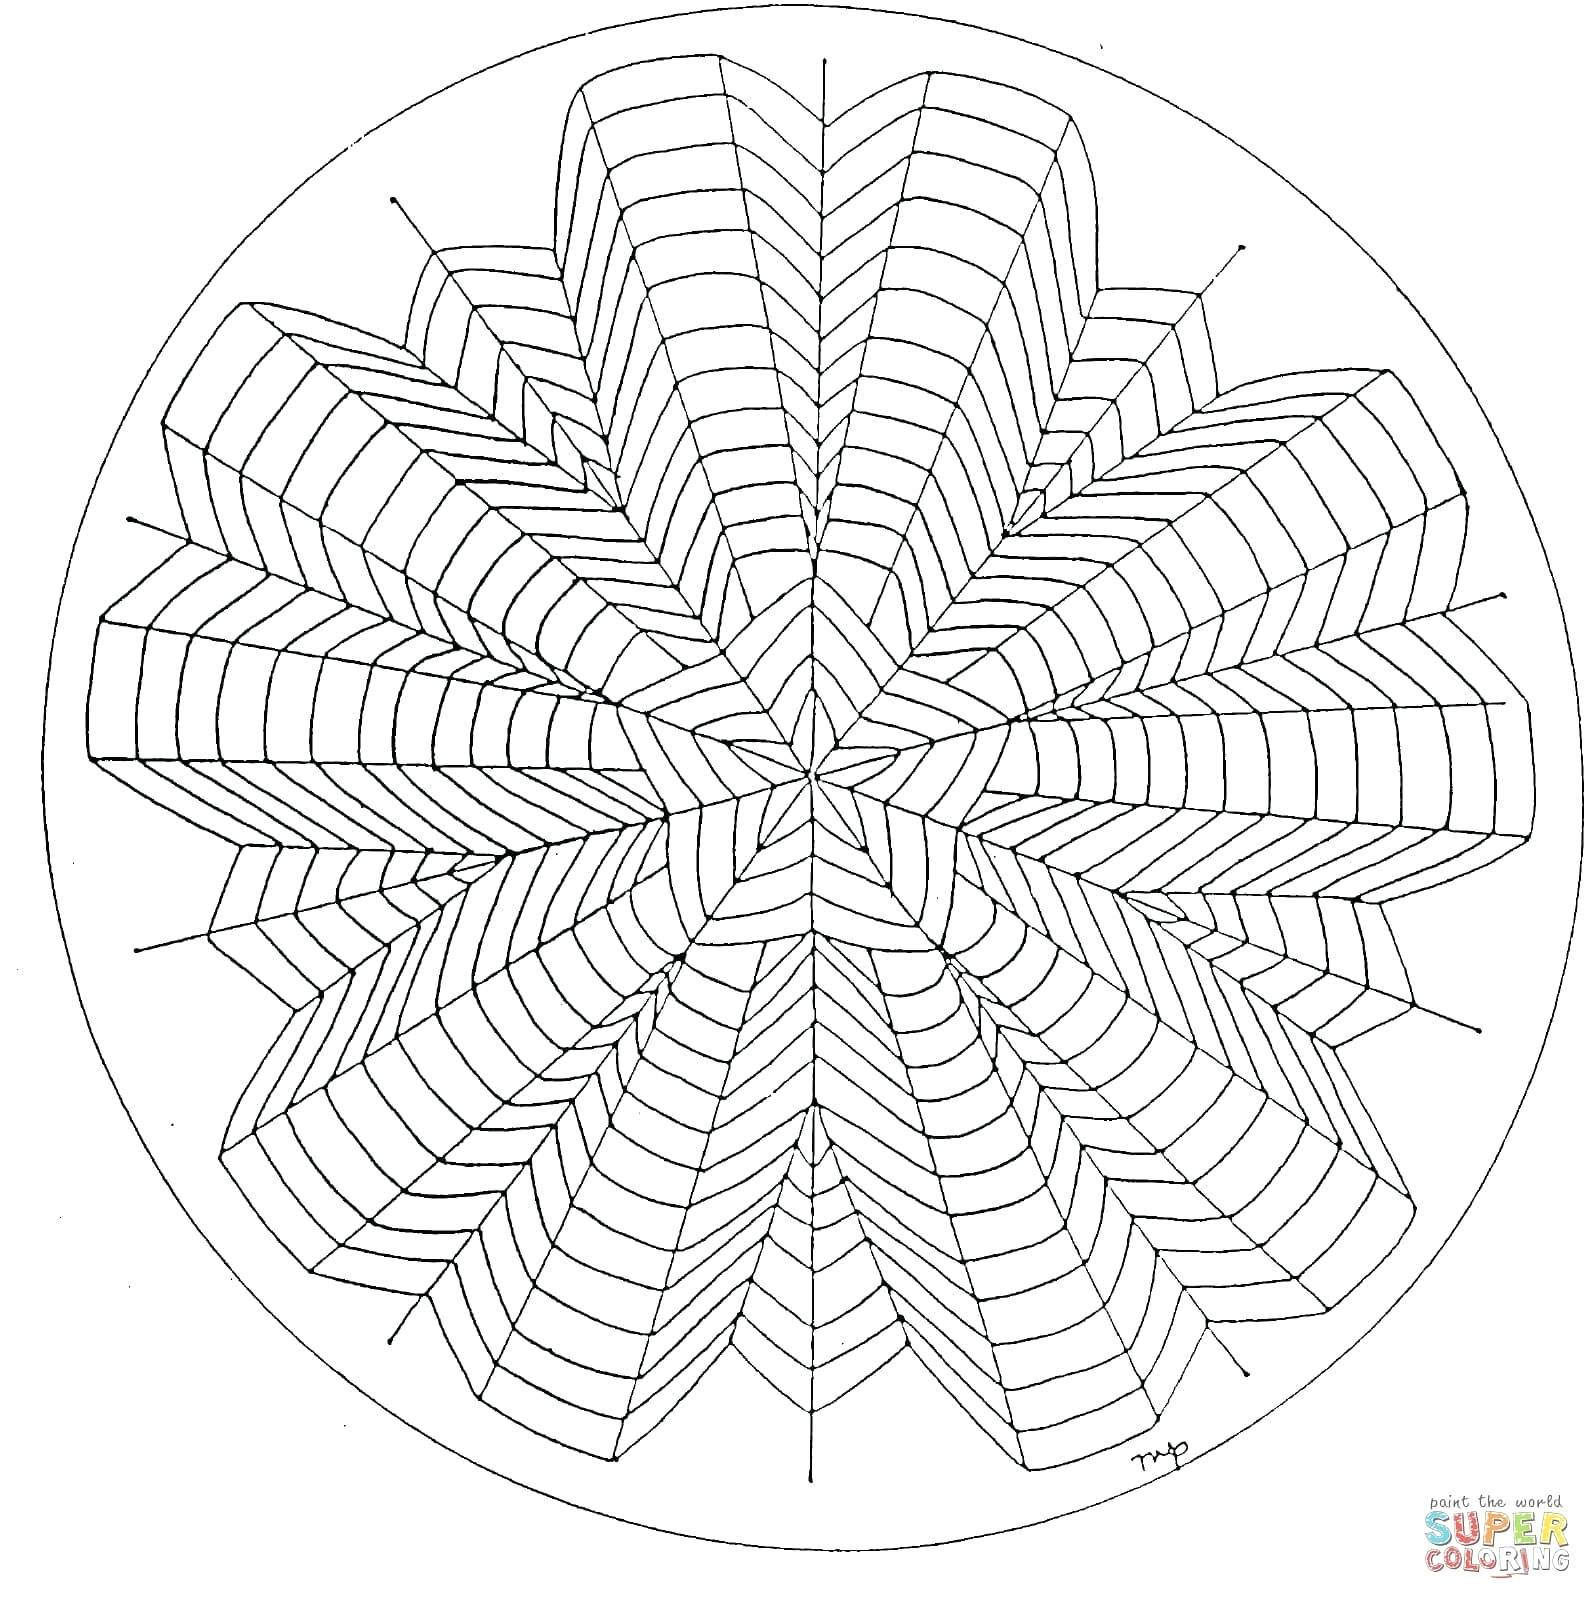 5 point star drawing at getdrawings com free for personal use 5